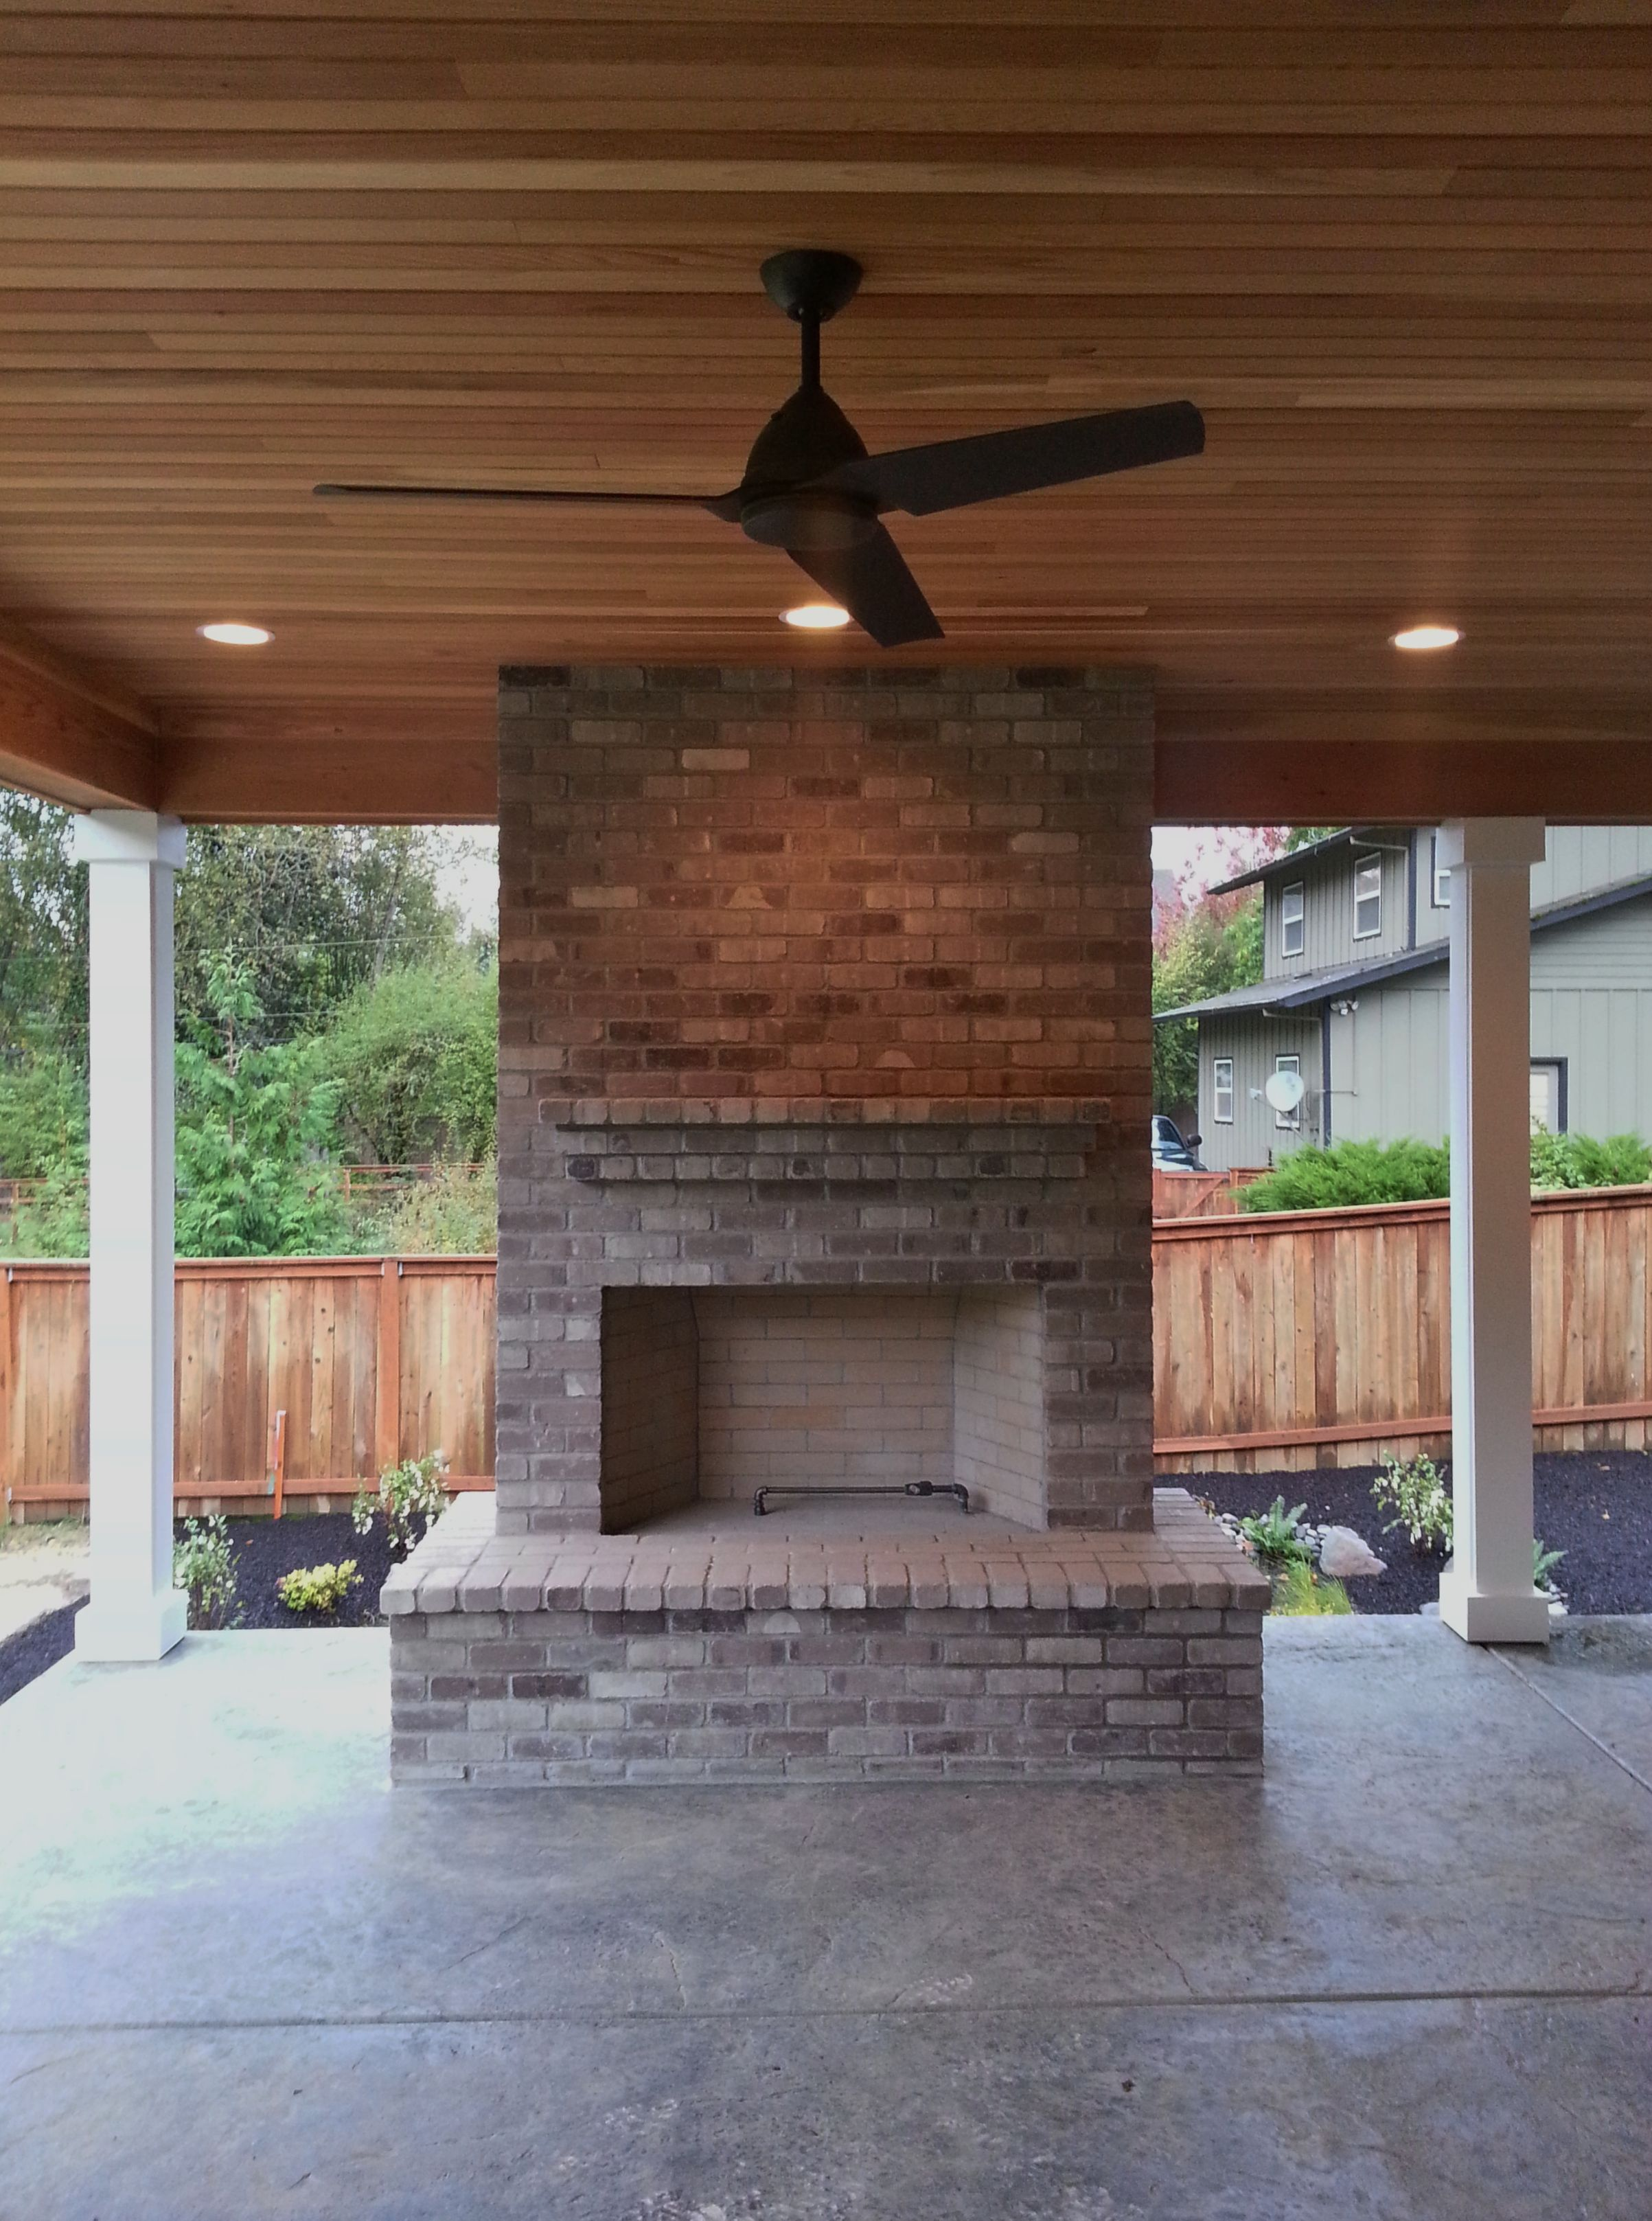 Fireplace And Patio Outdoor Fireplace Brick Gray Brick Outdoor Living